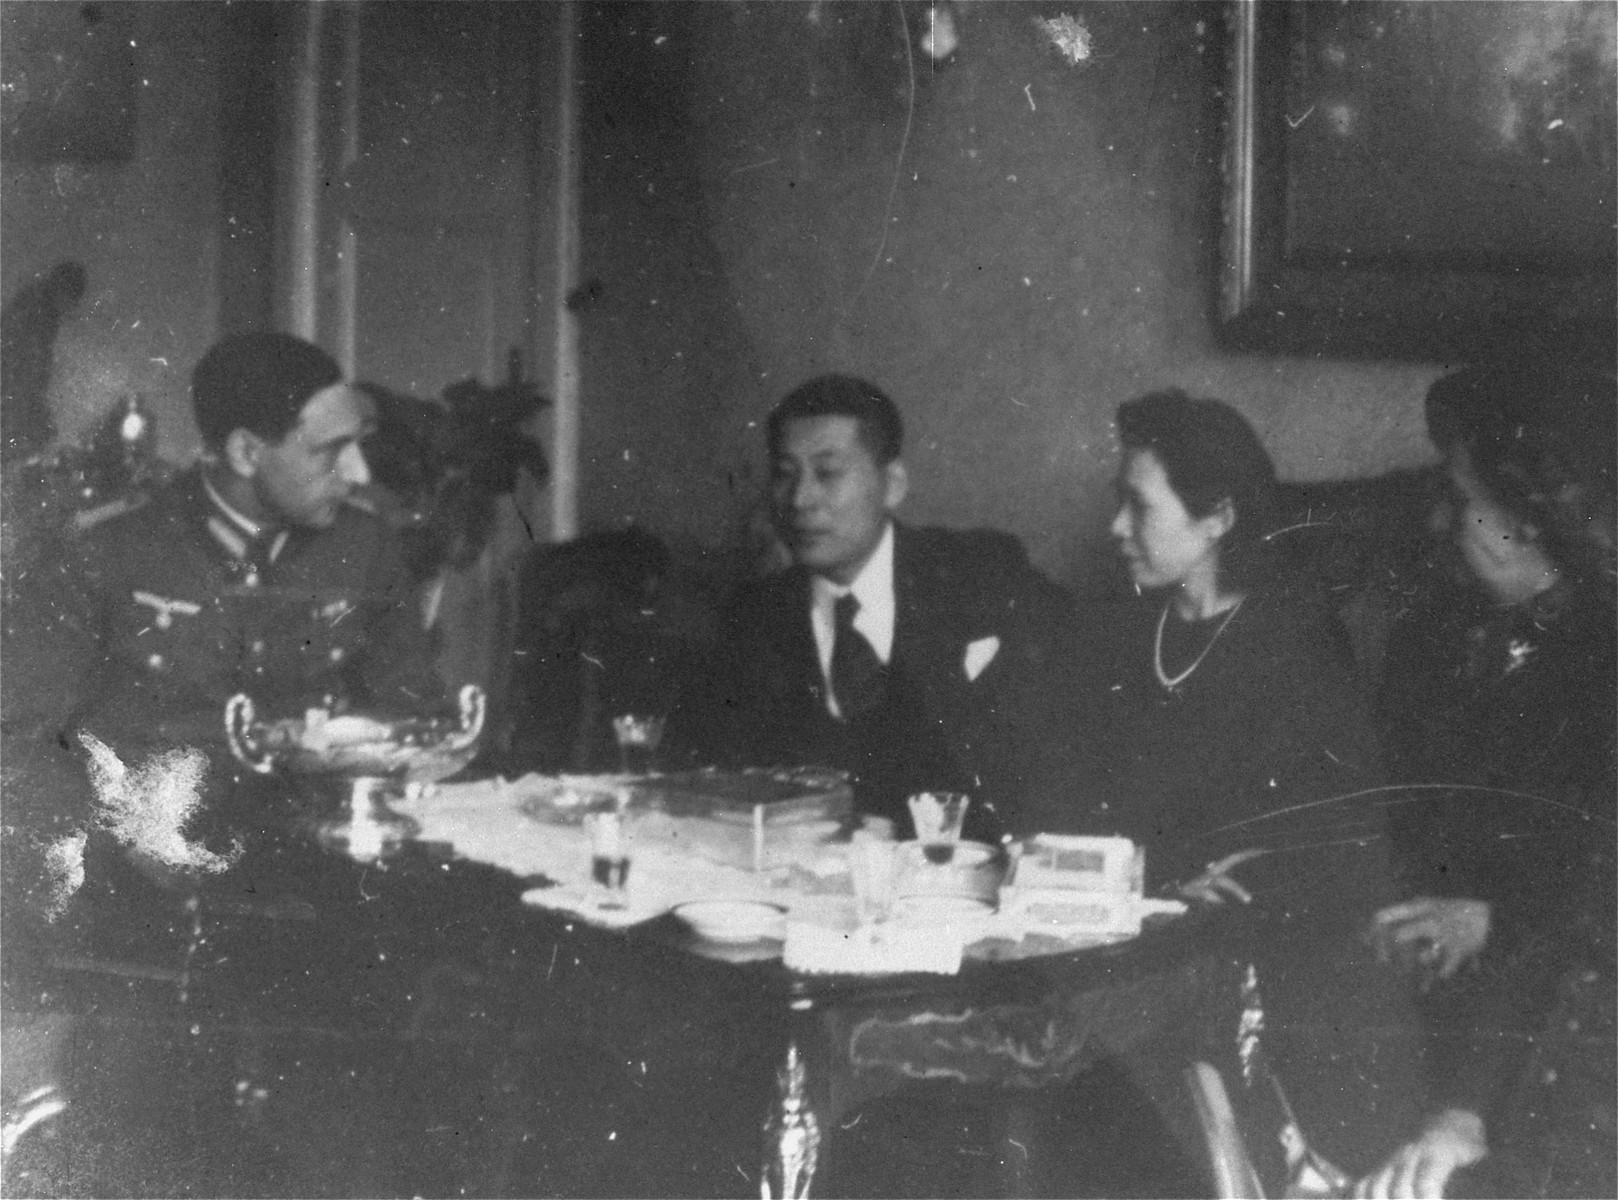 Chiune and Yukiko Sugihara dine with a German officer in Berlin.